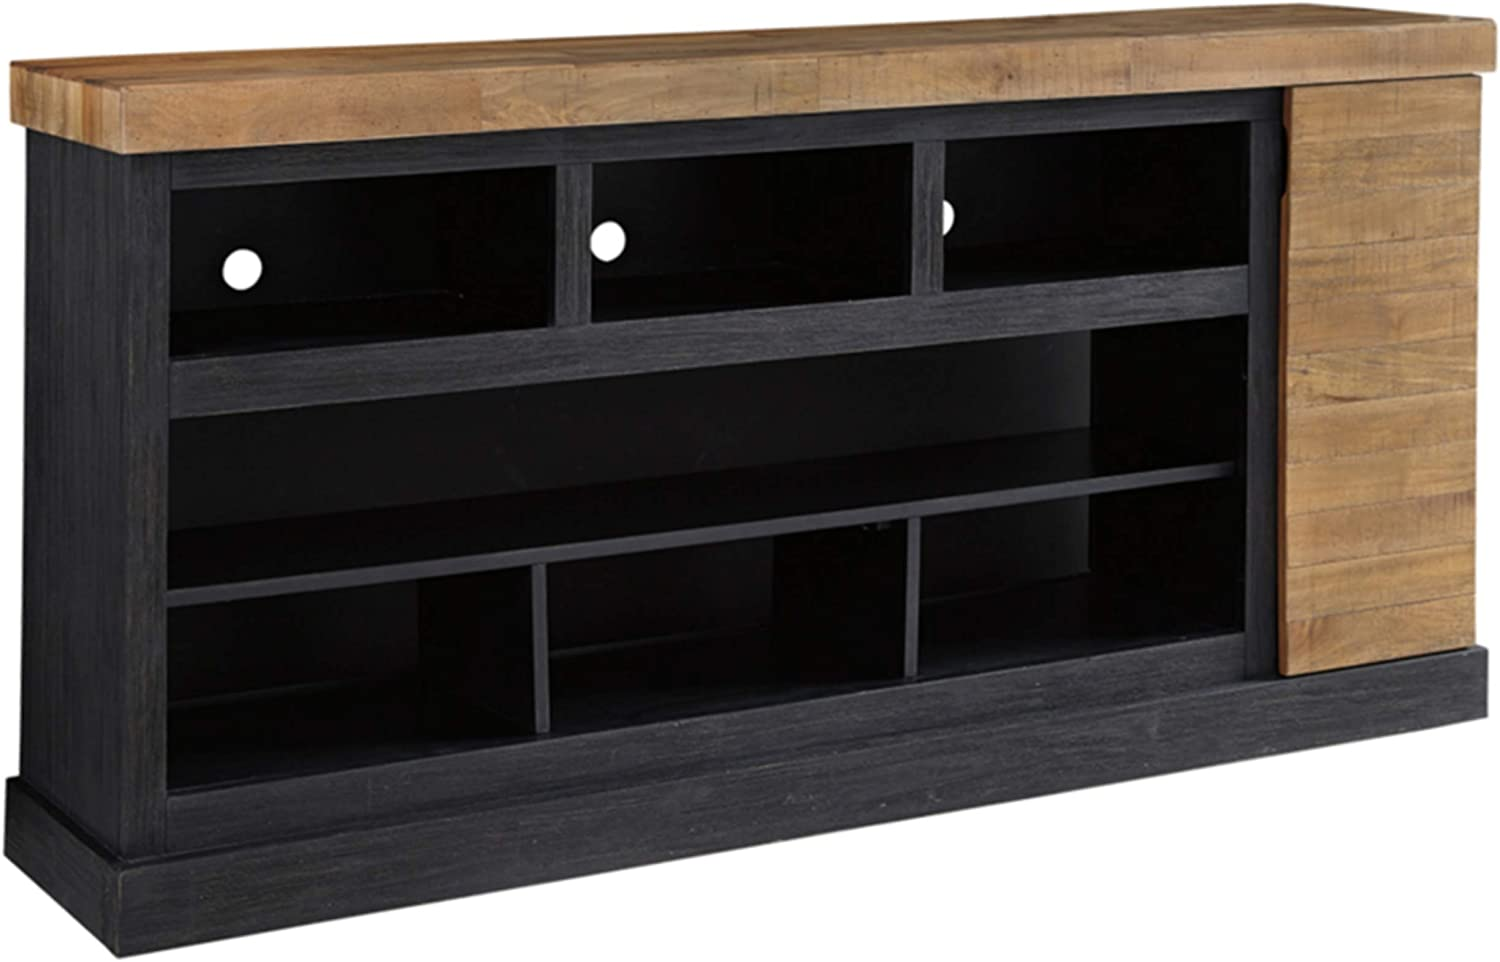 Signature Design by Ashley Tonnari Extra Large TV Stand with Fireplace Option Two-tone Brown